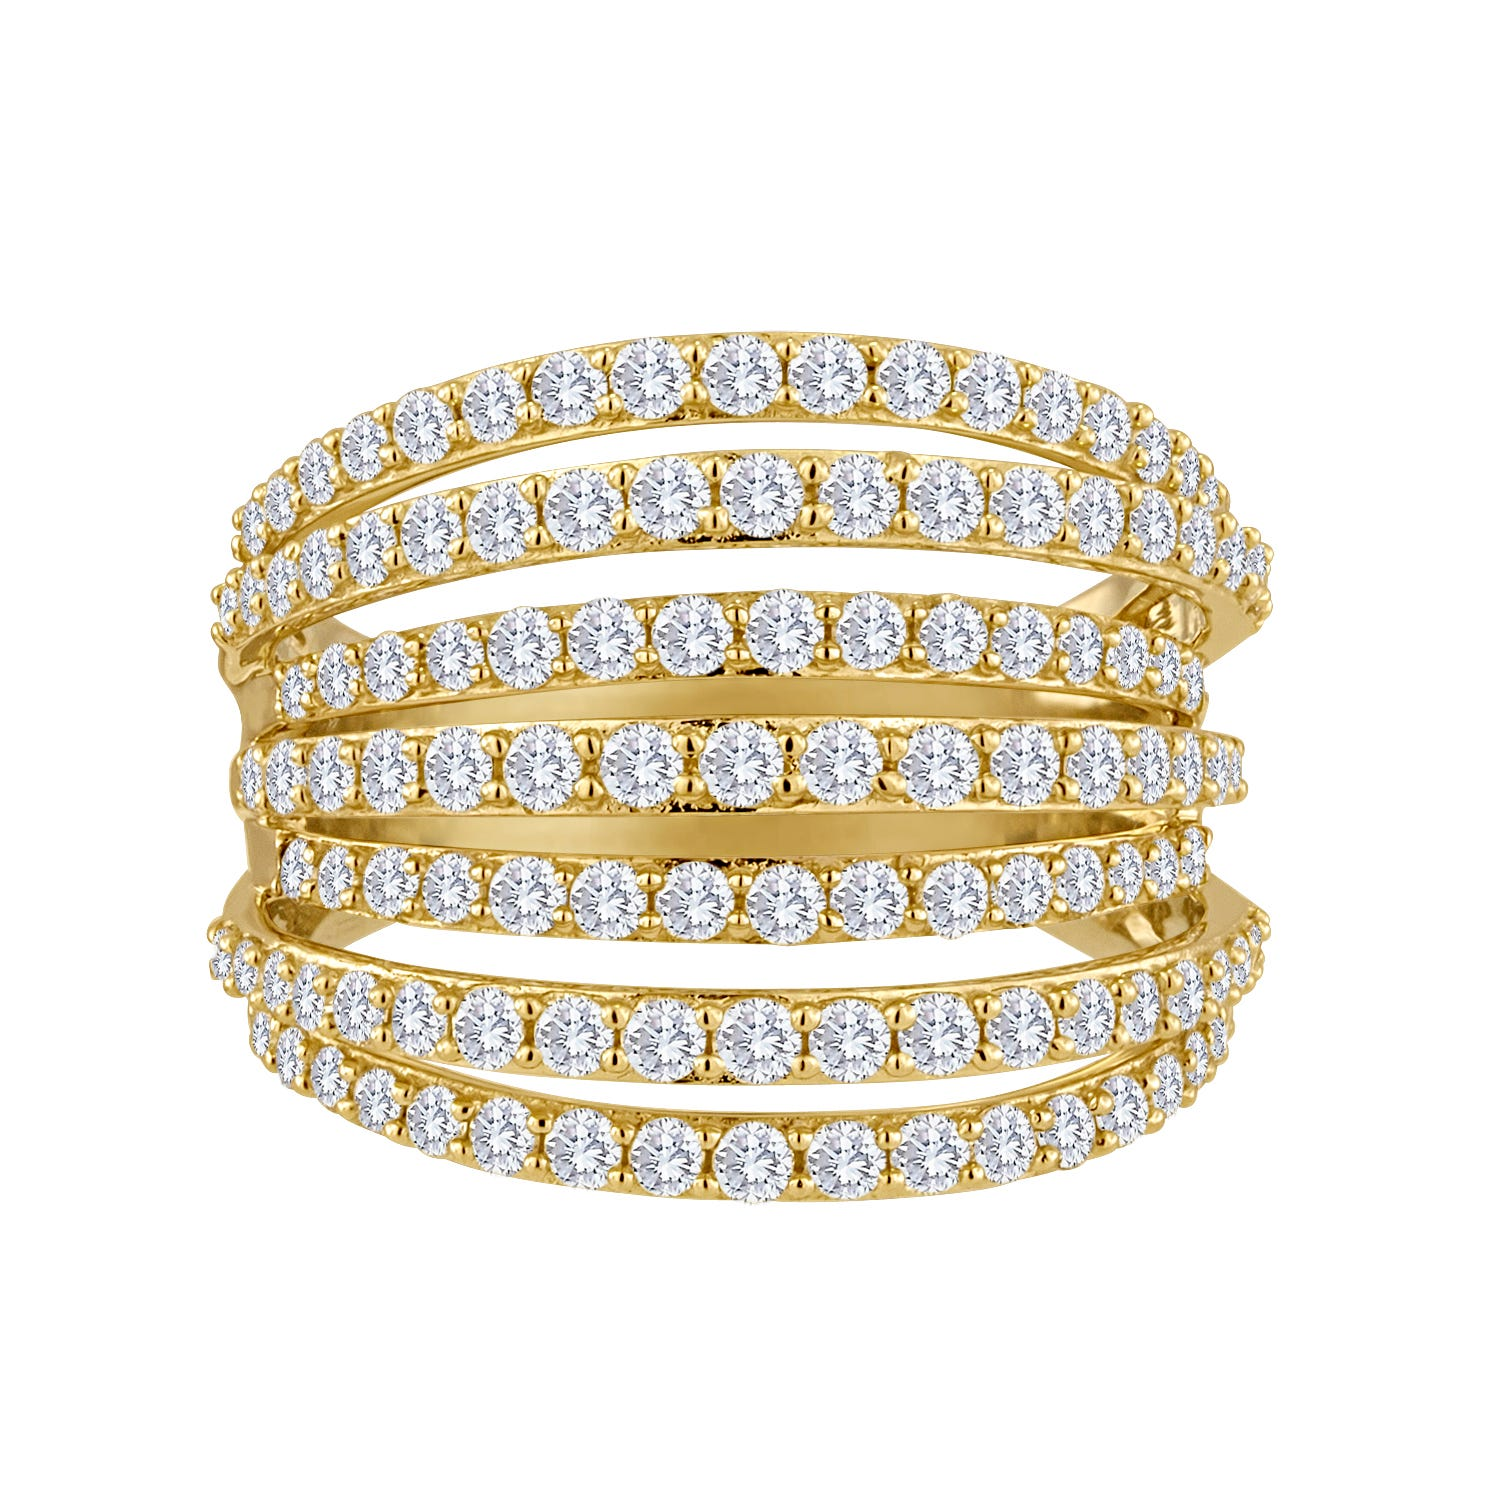 Five-Row 2ctw. Pave Diamond Fashion Ring in 14k Yellow Gold